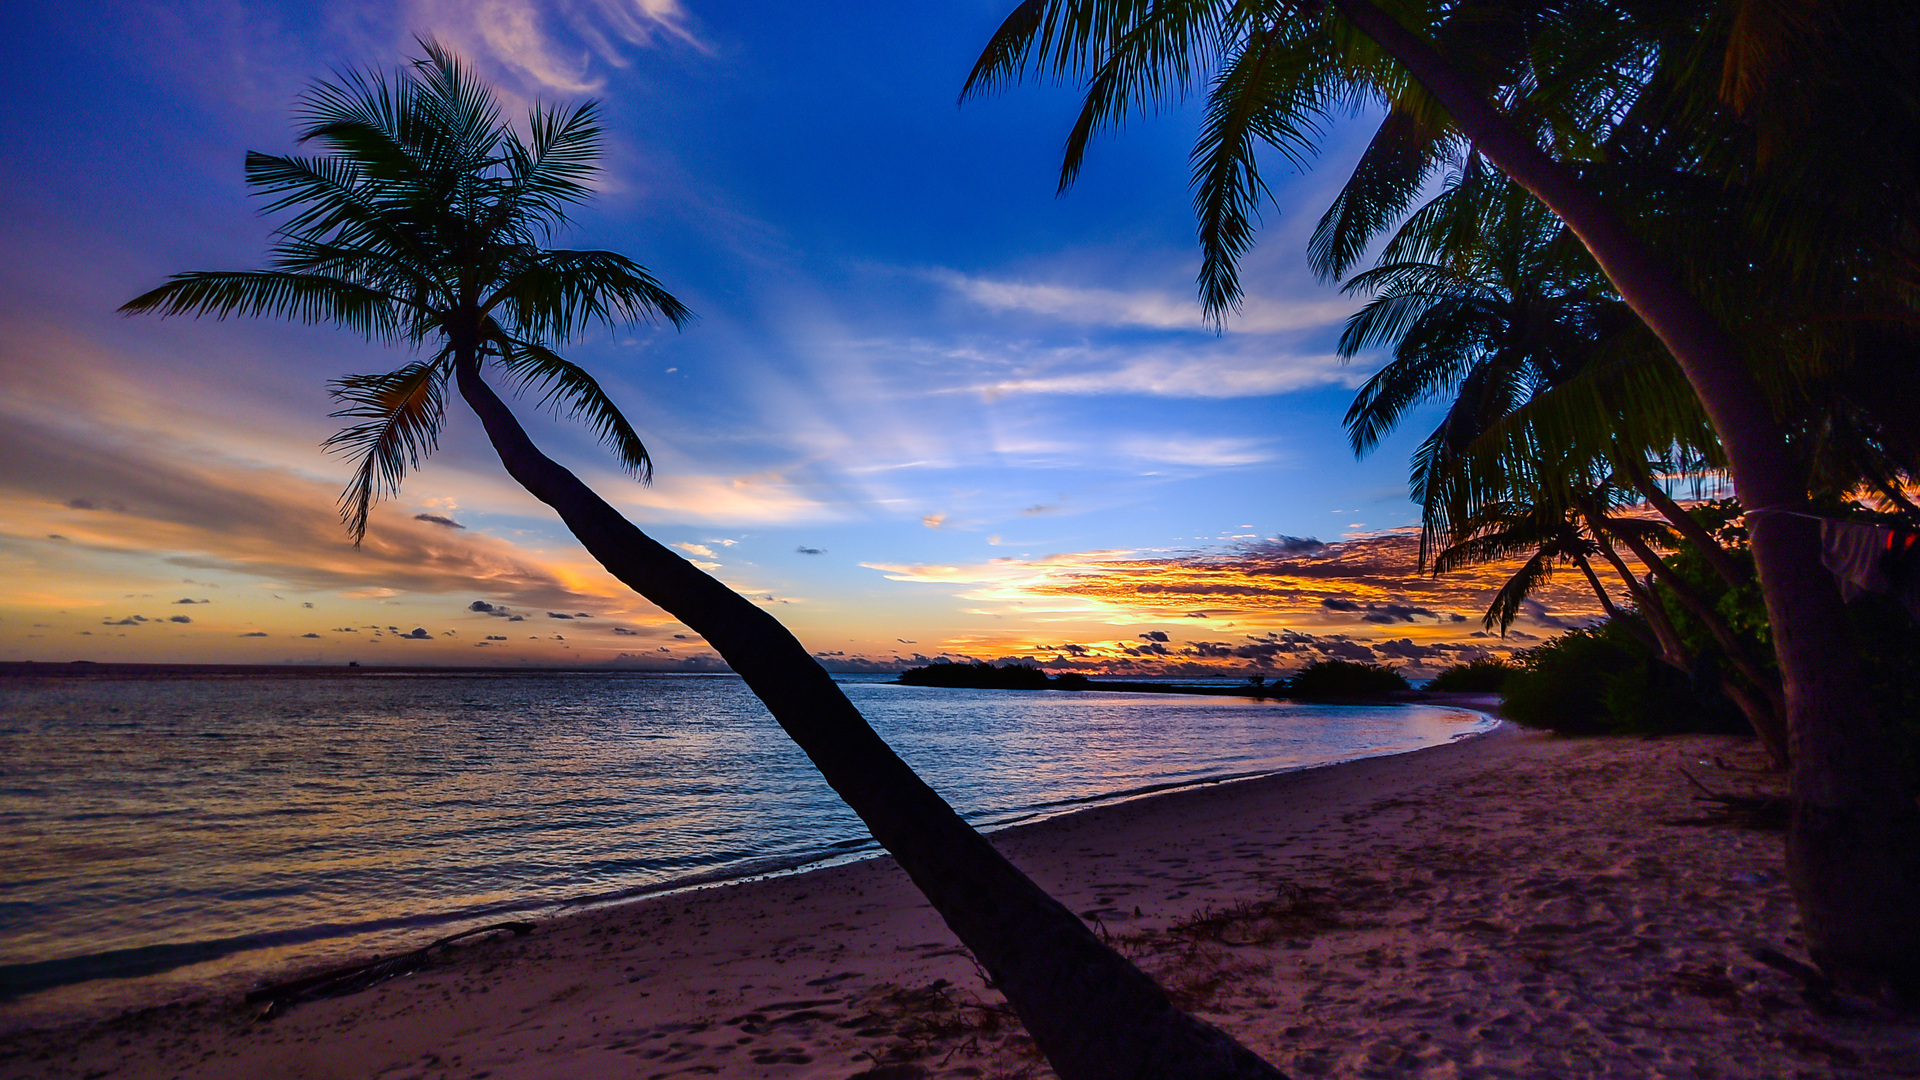 coconut-trees-beach-clouds-w7.jpg